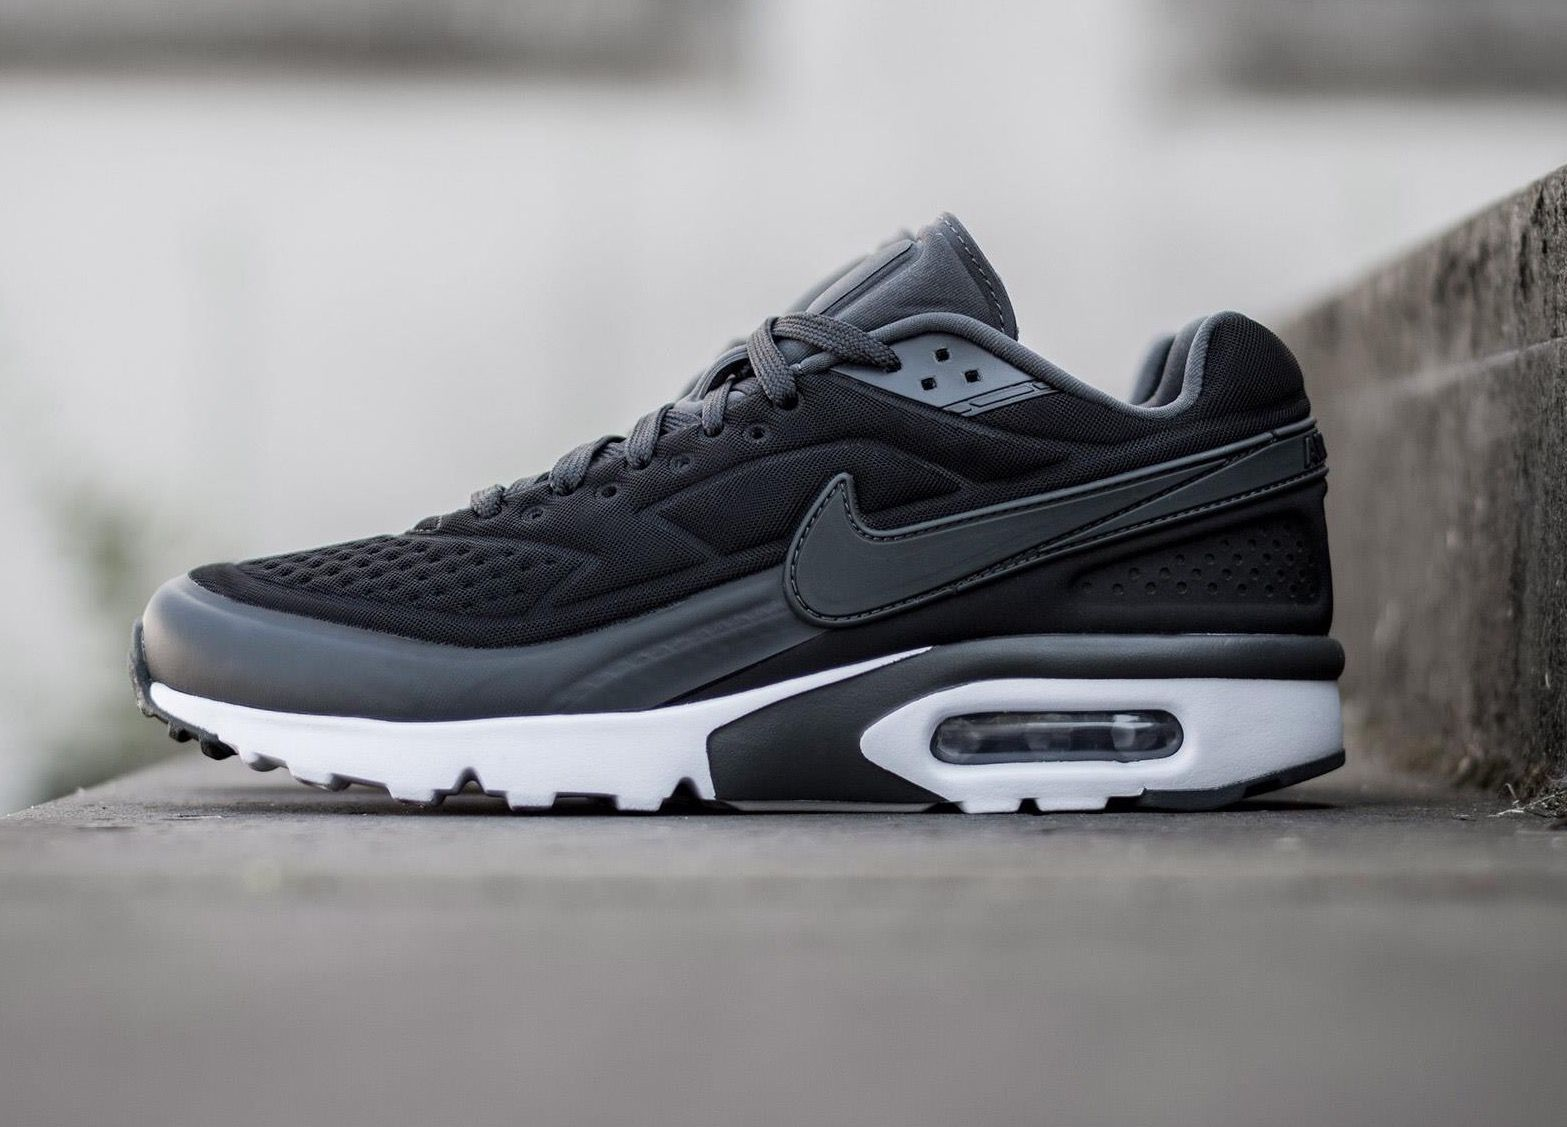 Air Max Classic Nike Air Classic Bw Ultra Black Grey Shoes In 2019 Nike